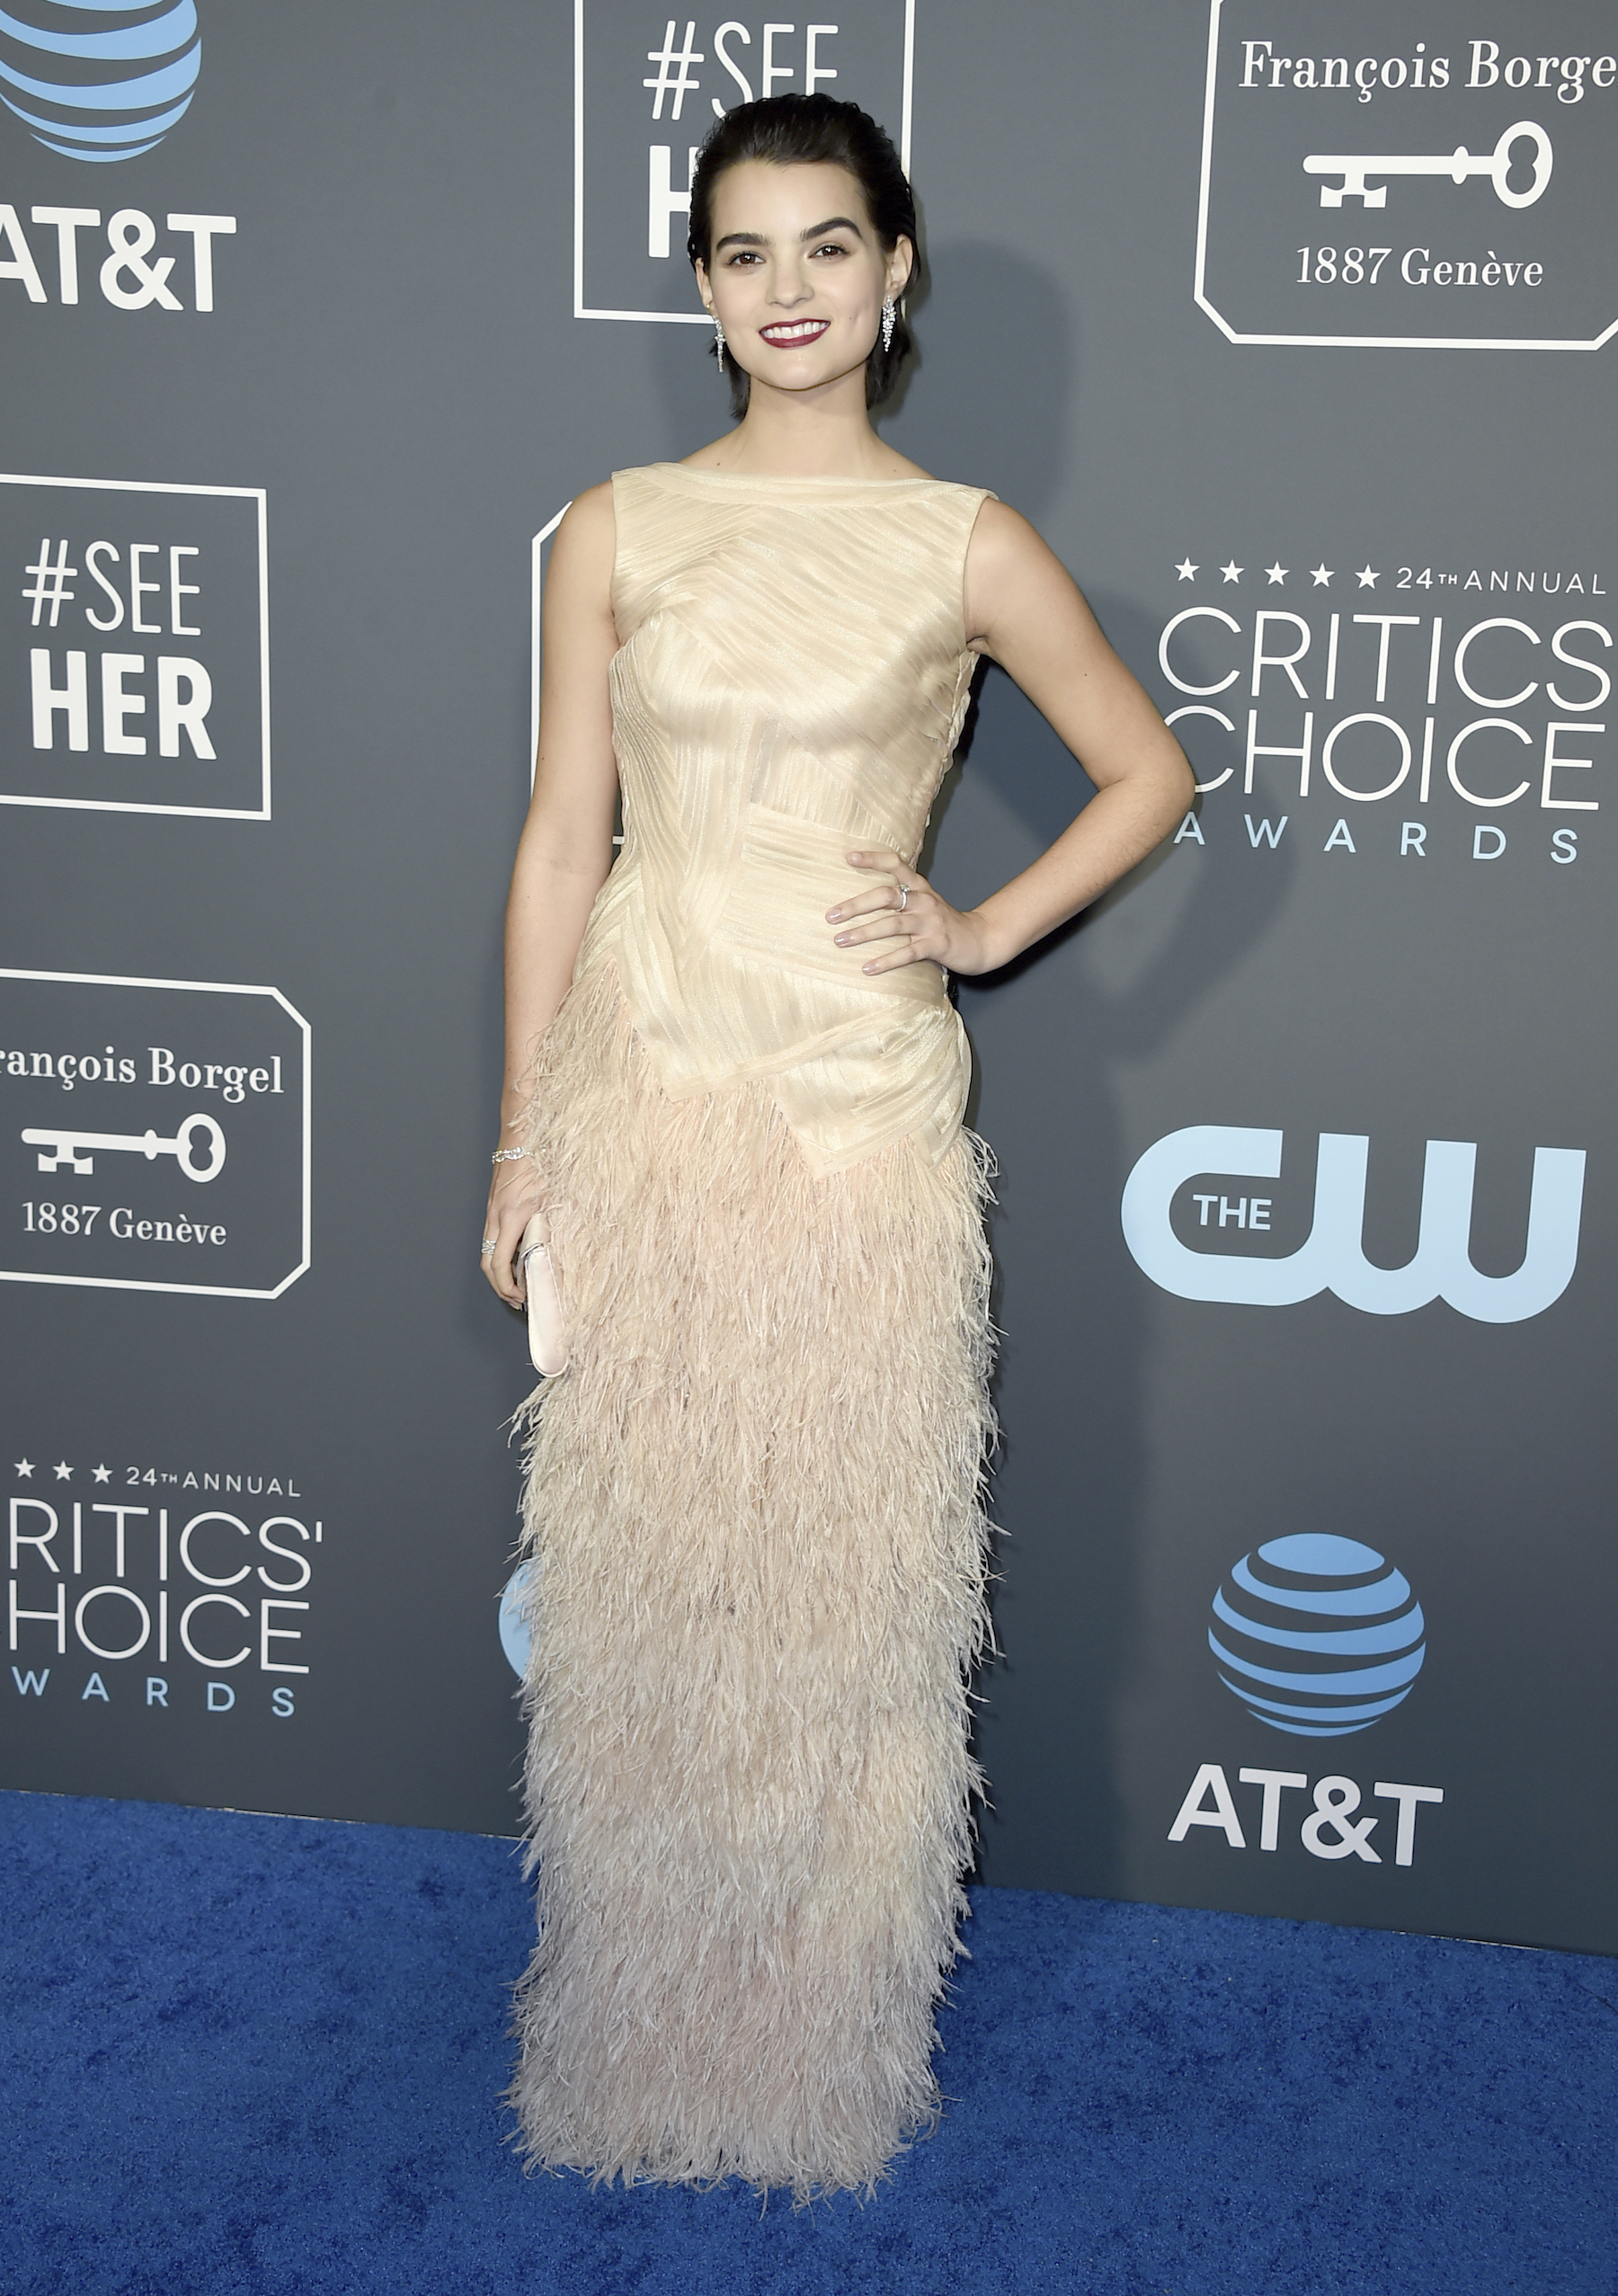 <div class='meta'><div class='origin-logo' data-origin='AP'></div><span class='caption-text' data-credit='Jordan Strauss/Invision/AP'>Brianna Hildebrand arrives at the 24th annual Critics' Choice Awards on Sunday, Jan. 13, 2019, at the Barker Hangar in Santa Monica, Calif.</span></div>